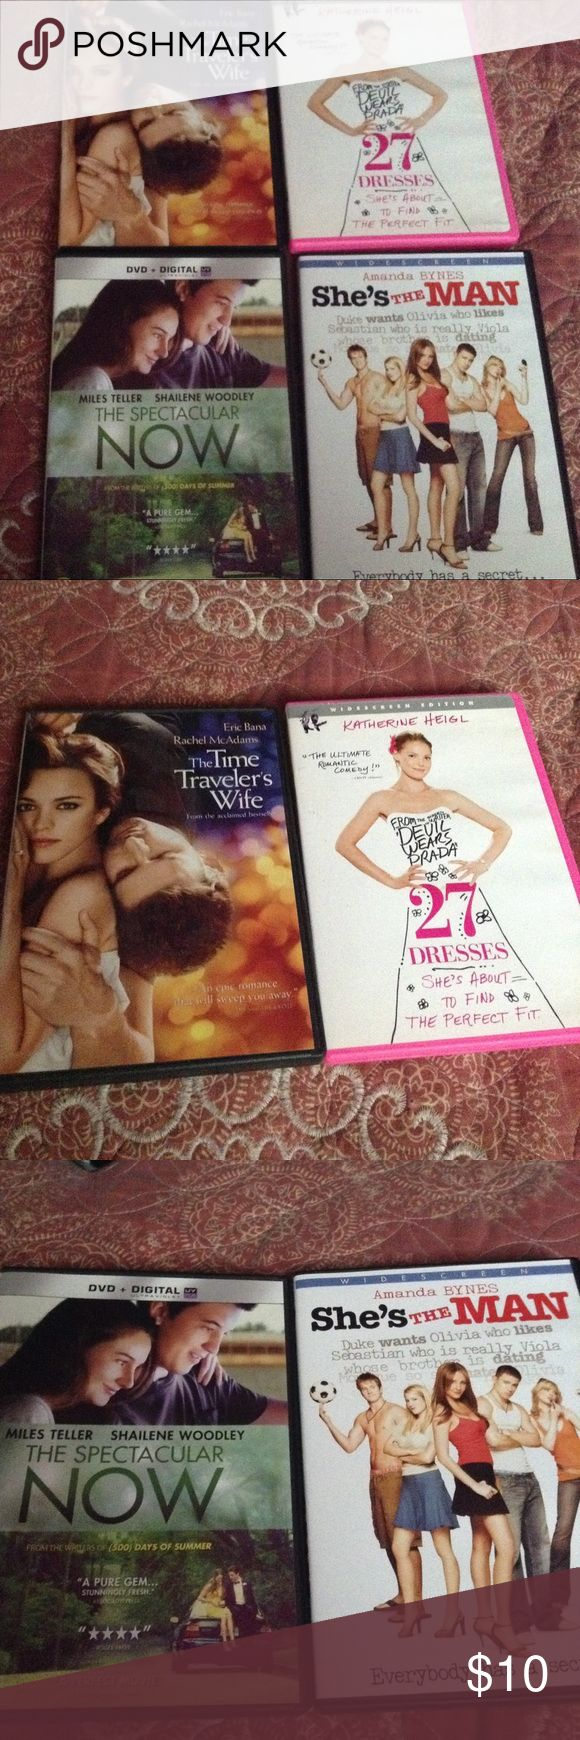 Chick Flick Movie Bundle fun chick flicks for a girls night in, no scratches Other